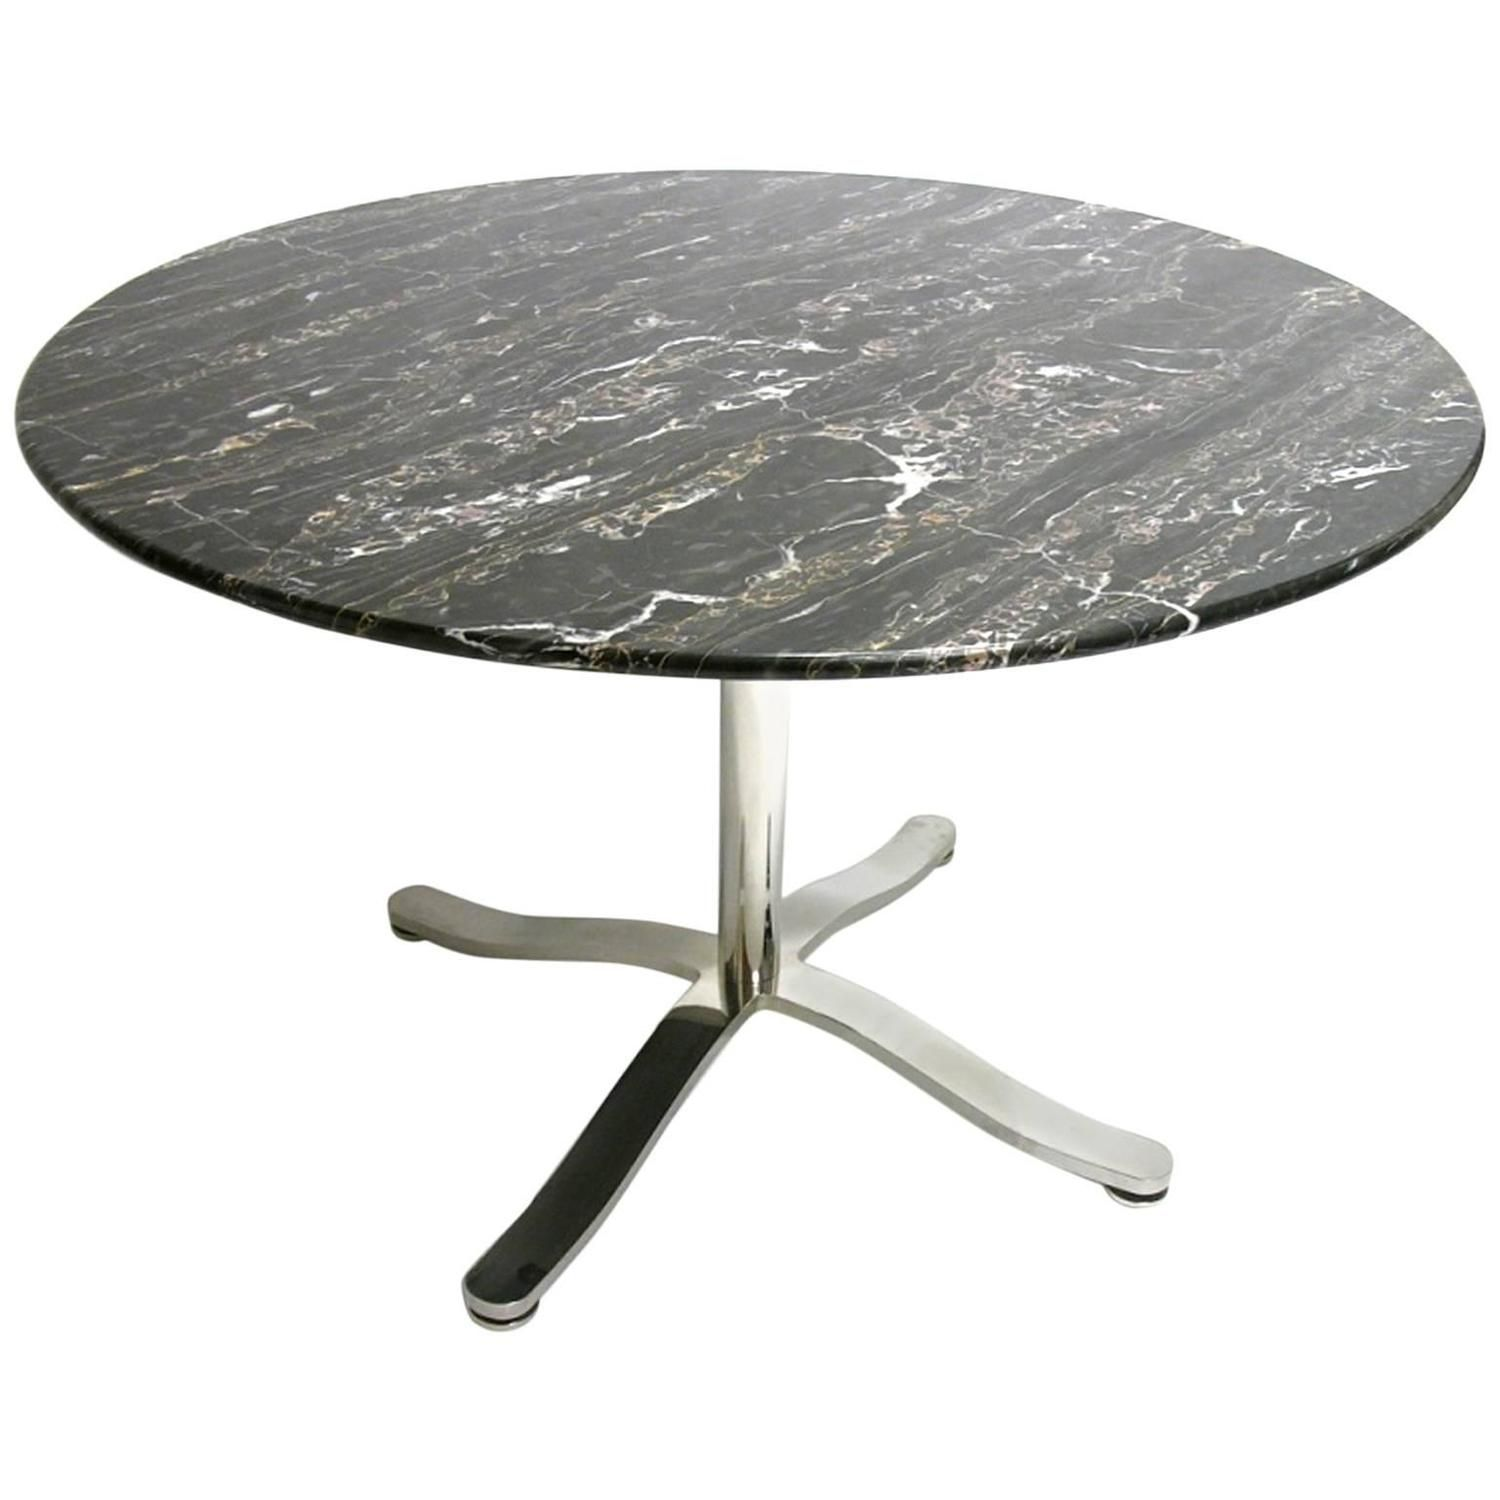 Nicos Zographos Alpha Pedestal Table With Stunning Black Marble Top From A Unique Collection Of Antique And Modern Pedestal Table Marble Top Table Furniture